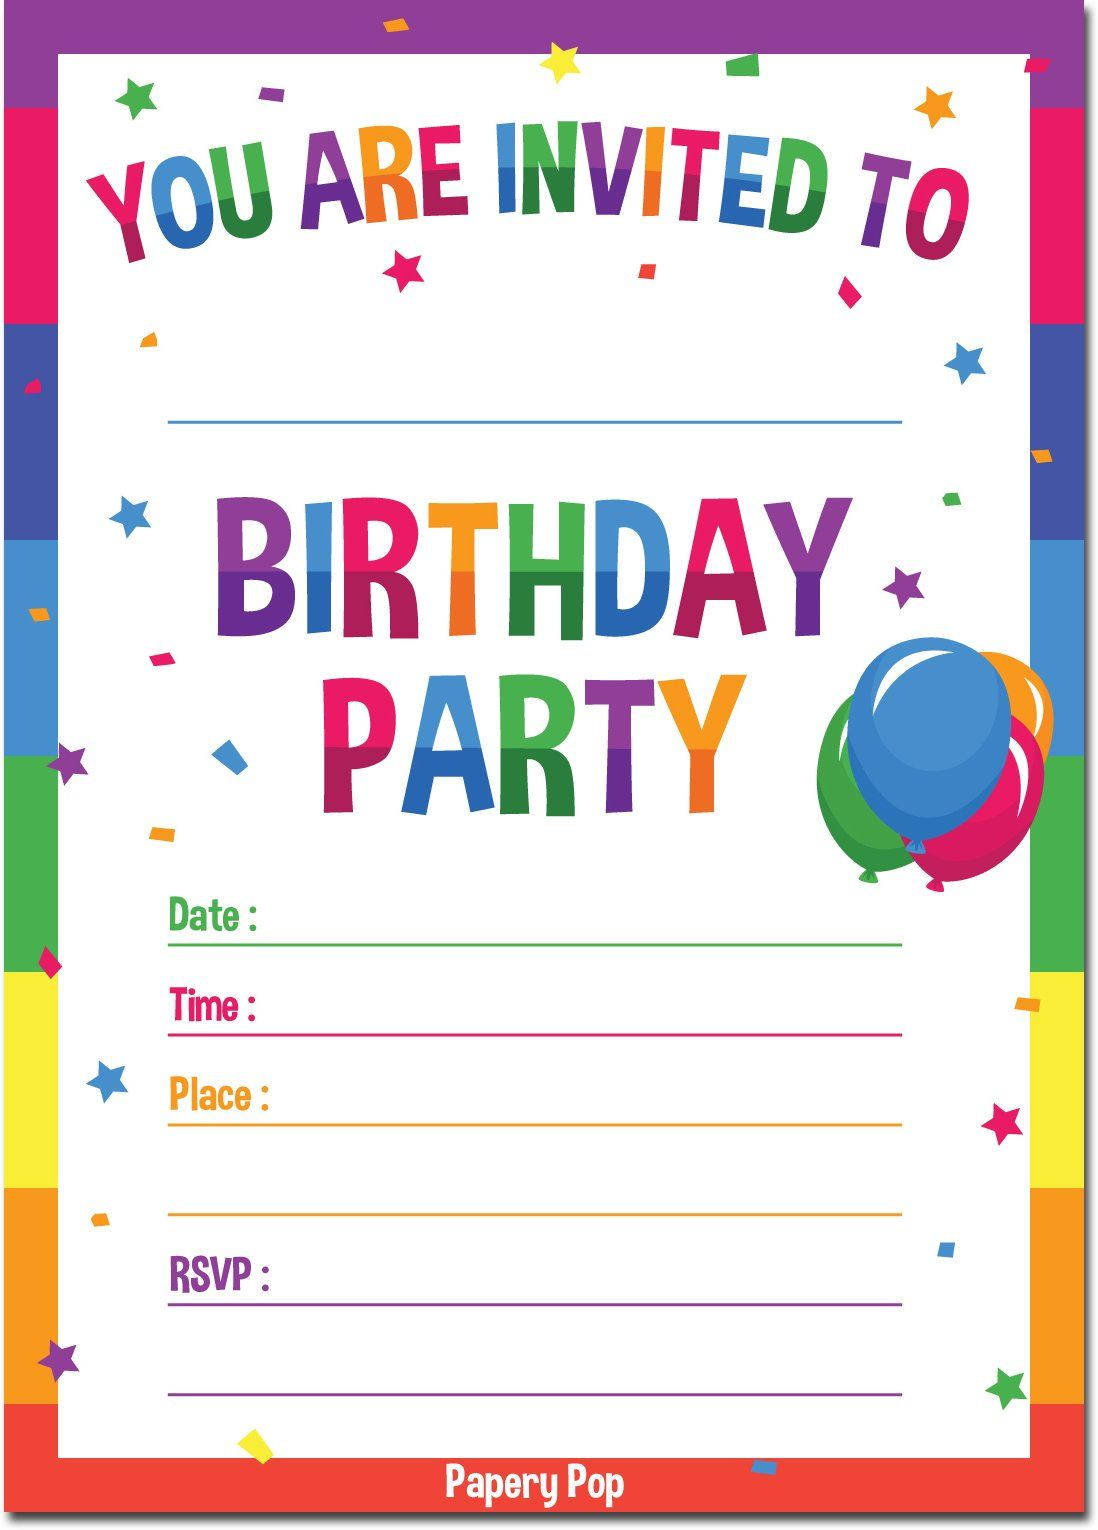 Birthday Party Invitations With Envelopes 15 Count Anni Birthday Party Invitations Printable Boy Birthday Party Invitations Girl Birthday Party Invitations